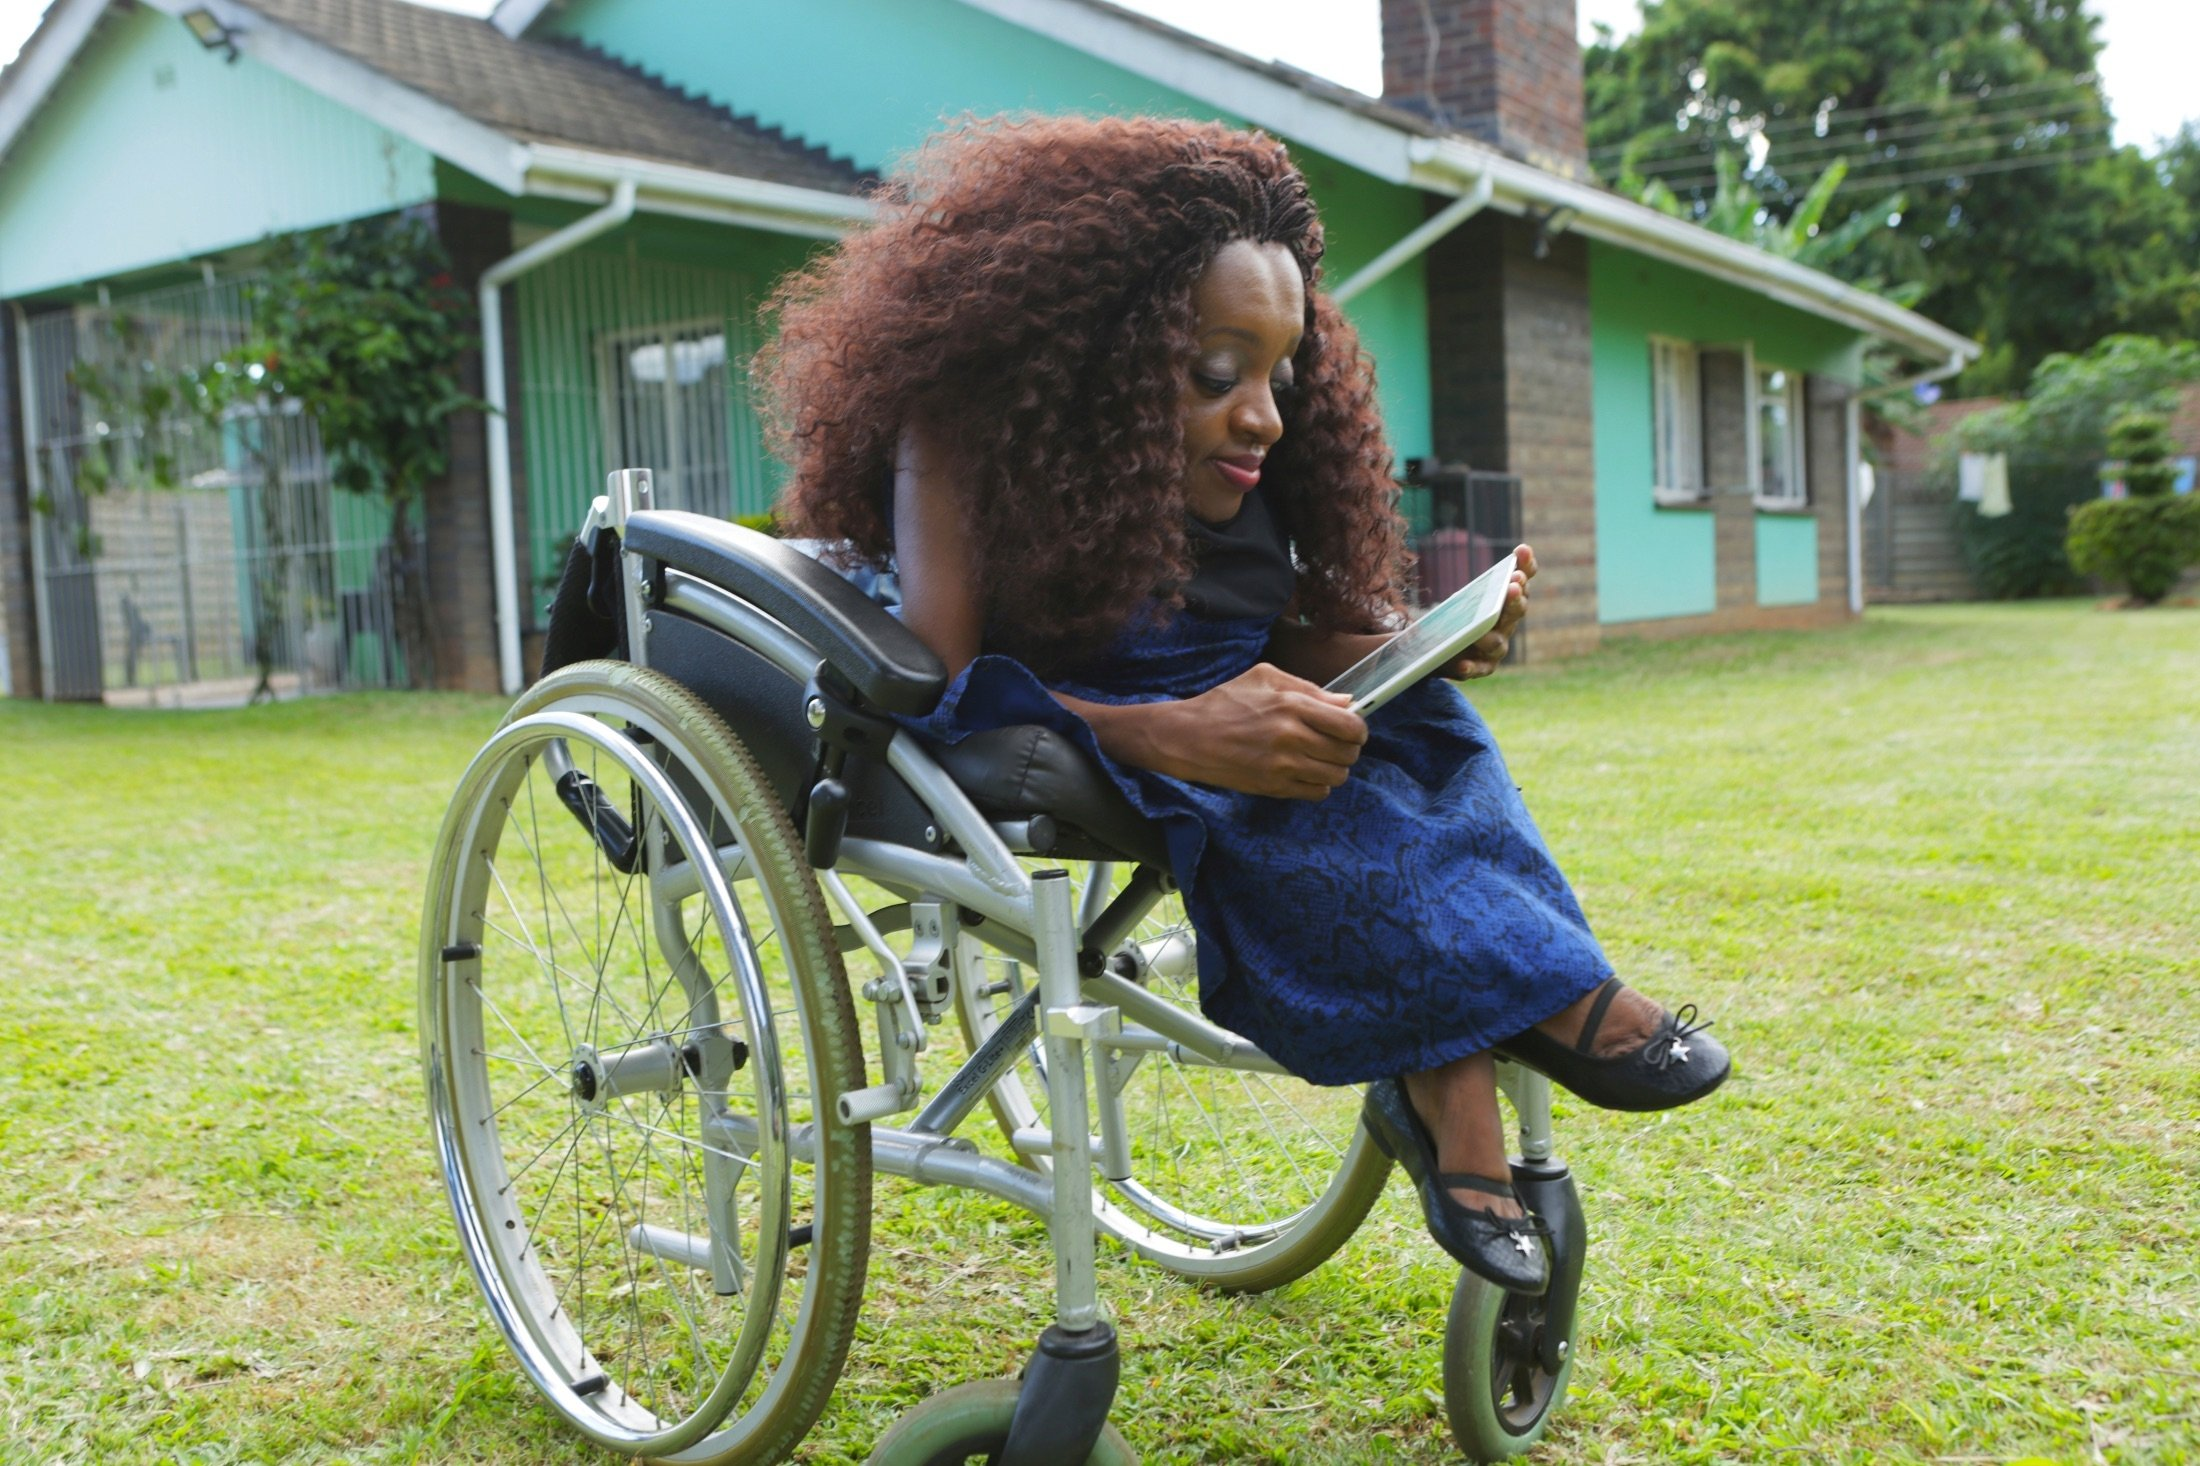 Florence Mudzingwa, a digital marketer and life coach, works from her wheelchair at her family home in  Harare, Zimbabwe, March 6, 2021. (AP Photo)